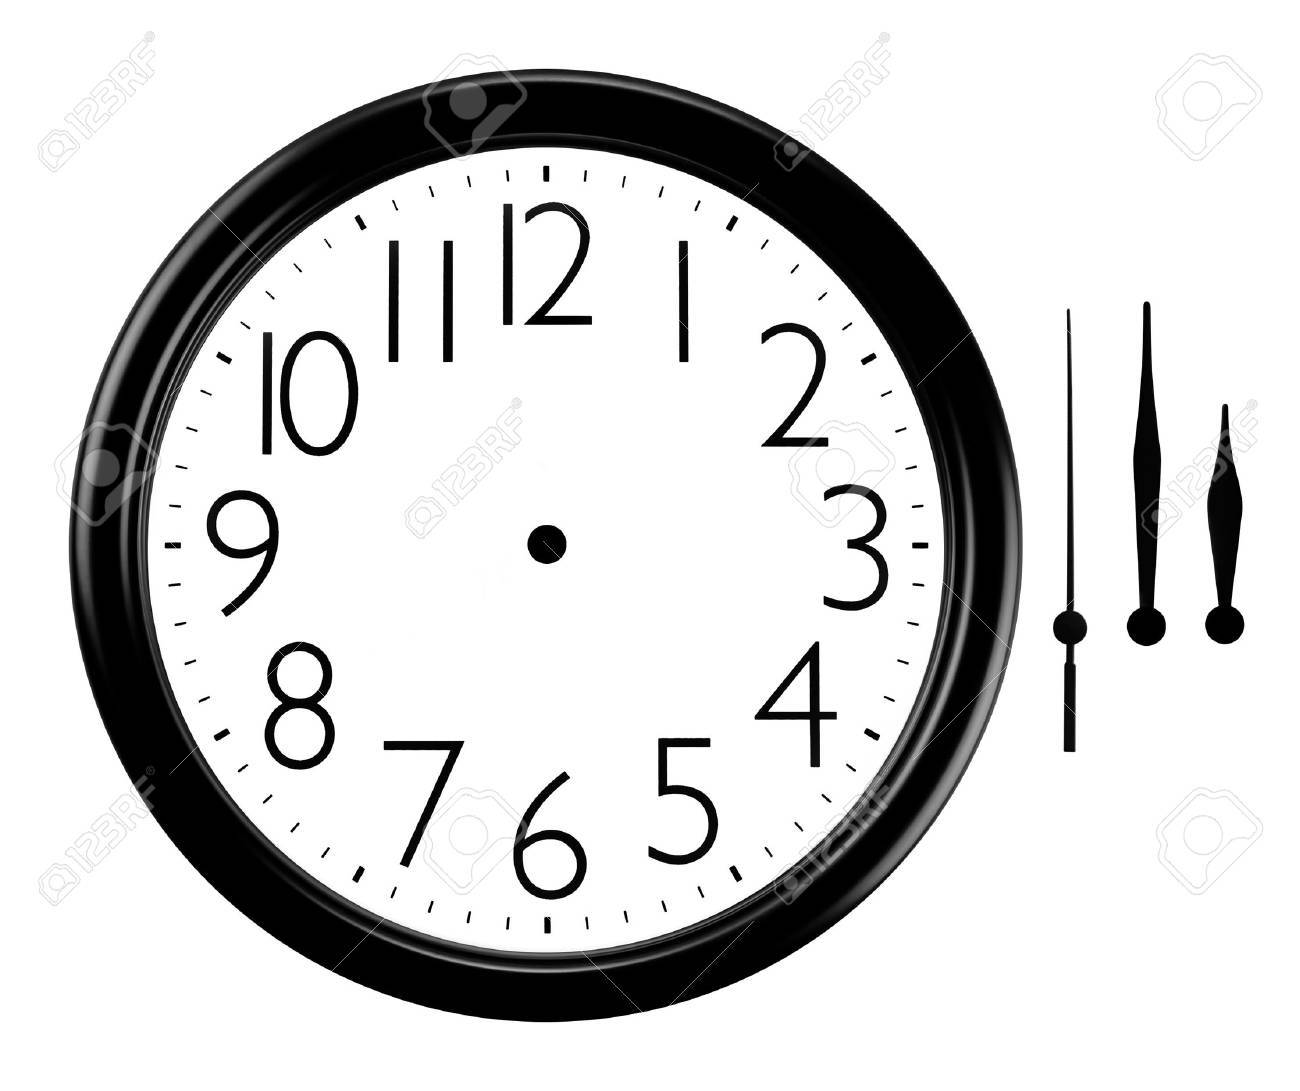 Black And White Wall Clock With Hands Separated Stock Photo Picture